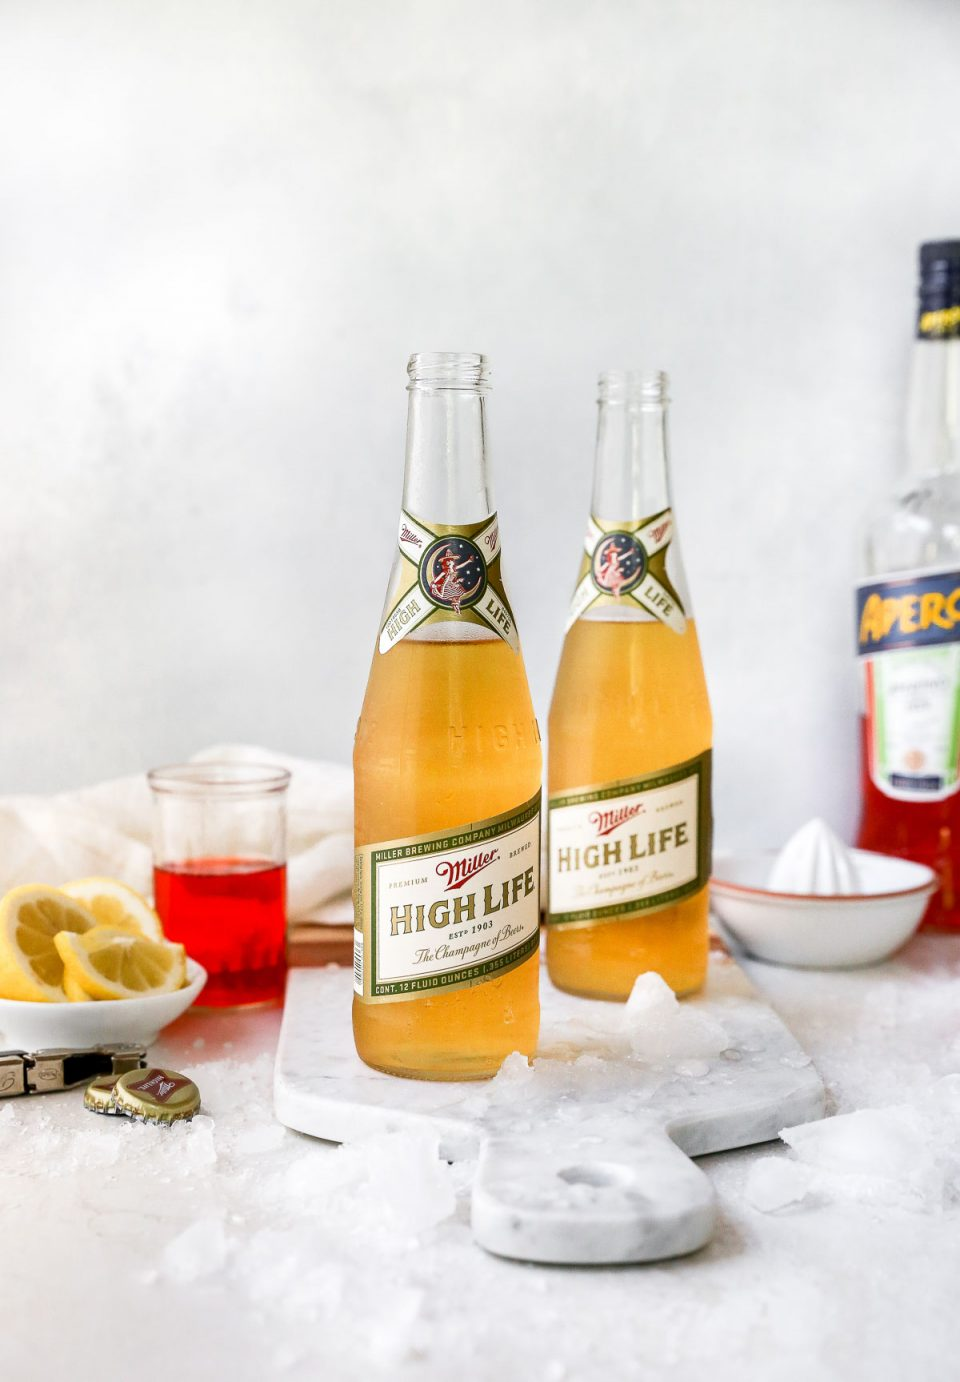 Spaghett drink ingredients: Miller High Life, lemons & Aperol liquor grouped close together on a white surface.